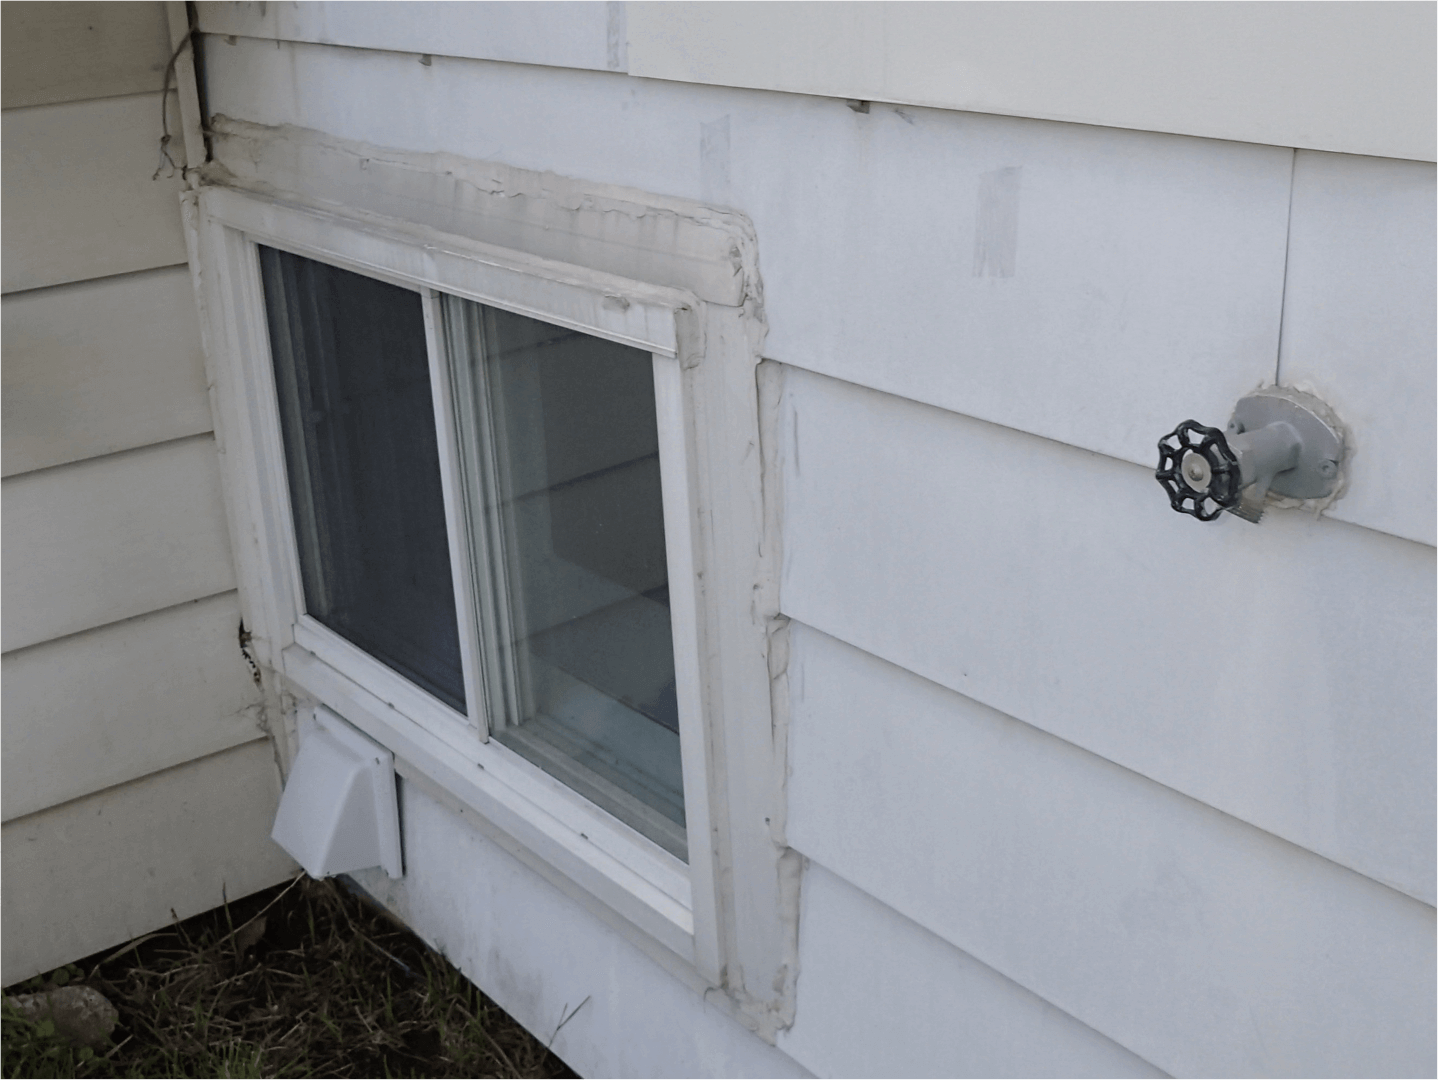 Bad window caulking